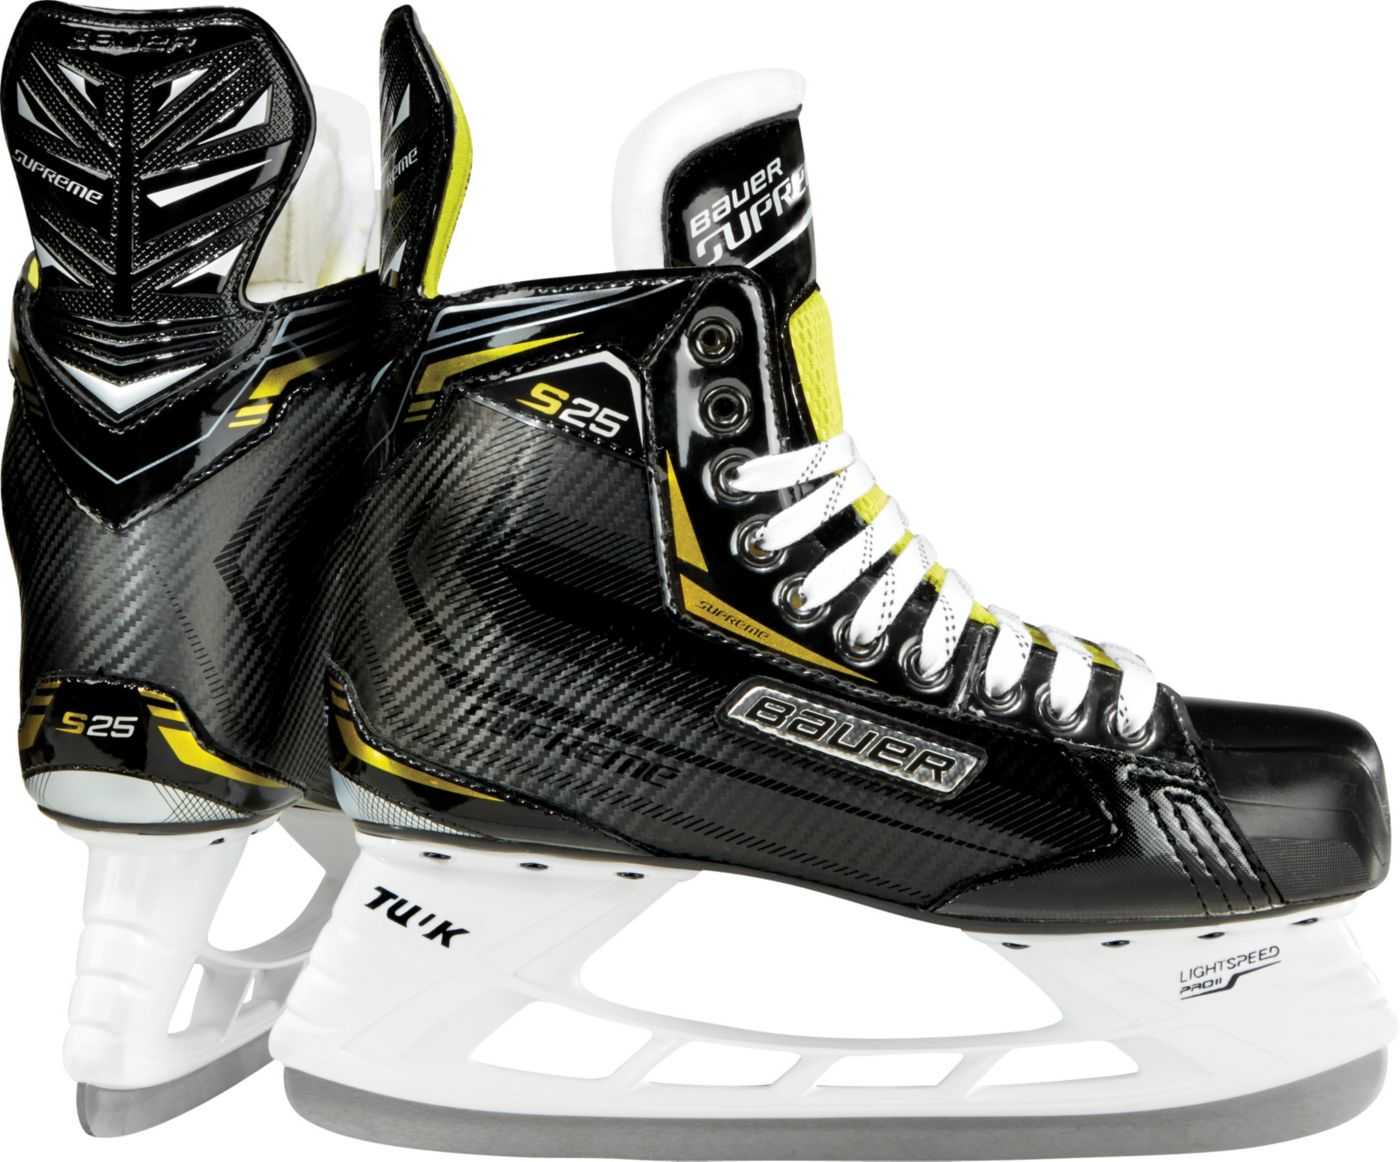 Bauer Junior Supreme S25 Ice Hockey Skates